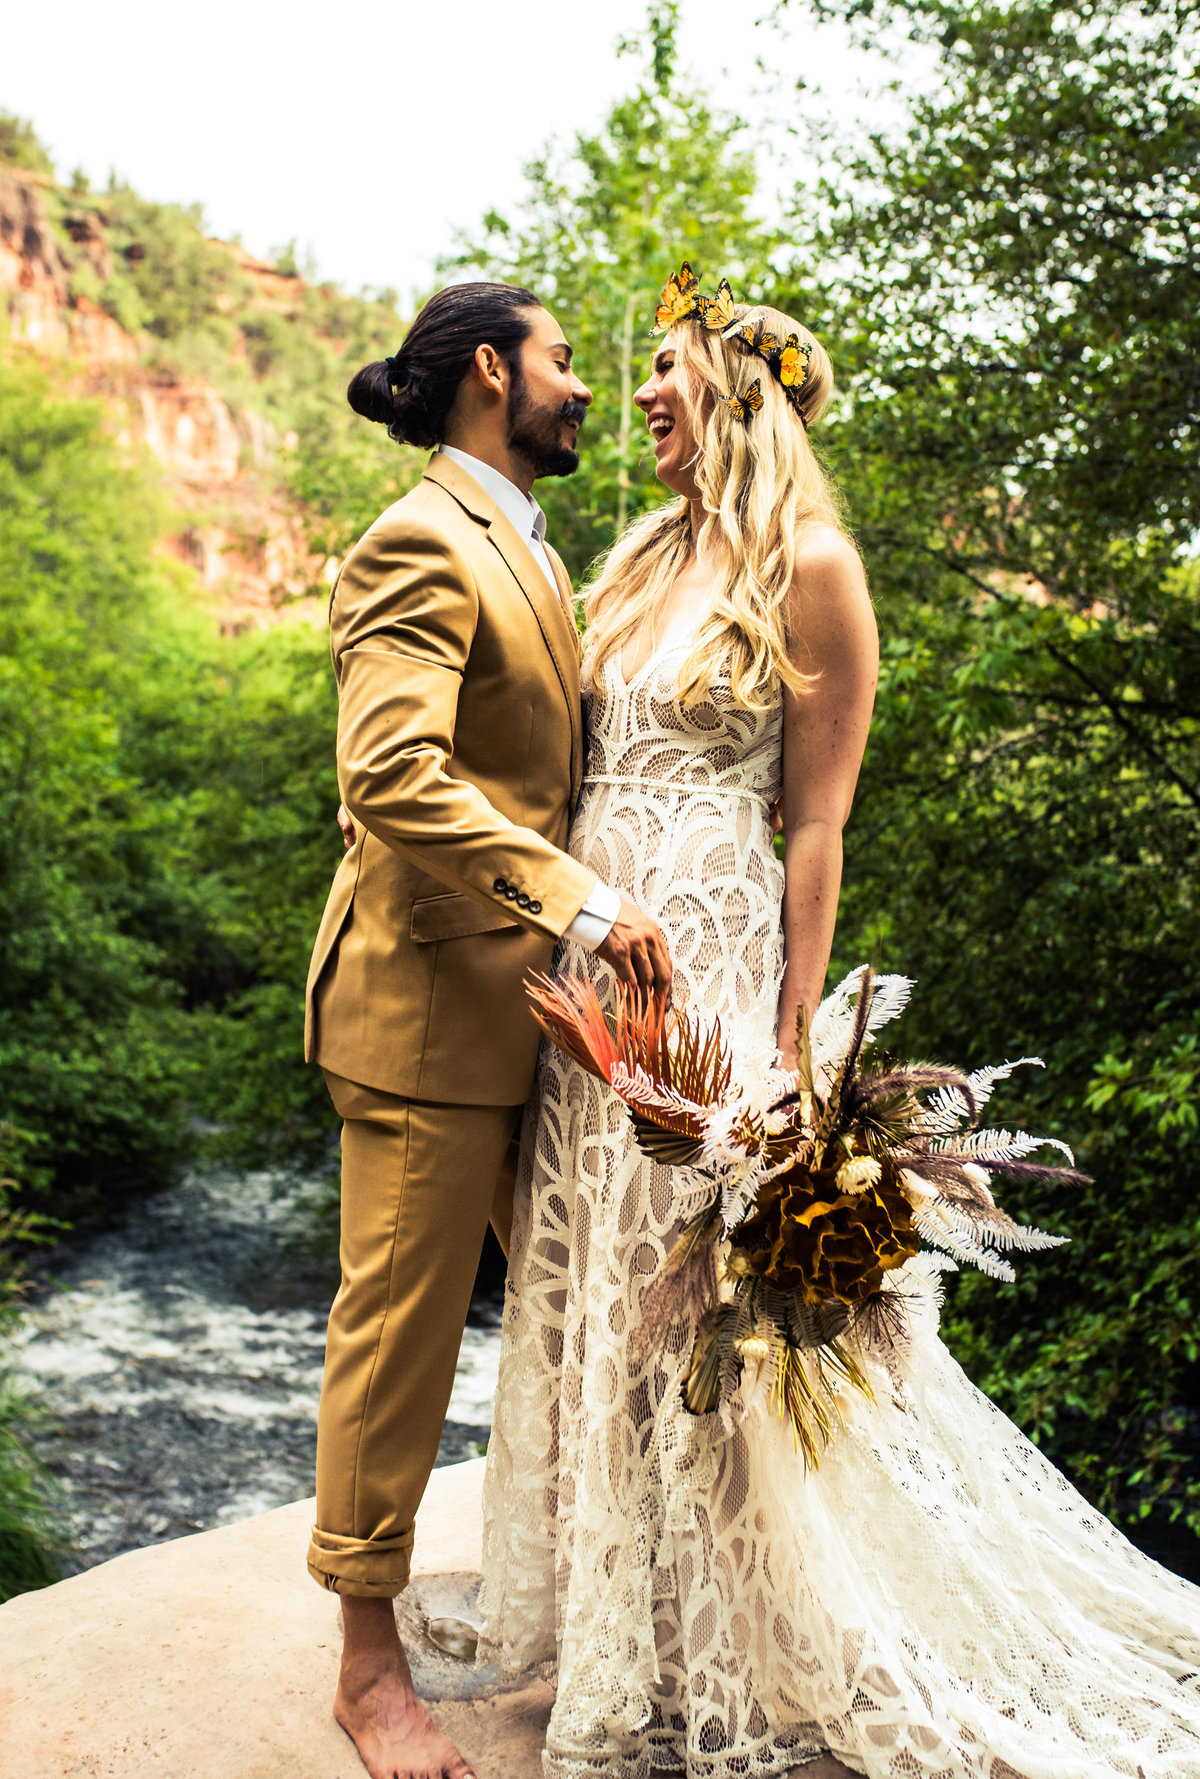 A Small Wedding in Sedona, Arizona right on Oak Creek